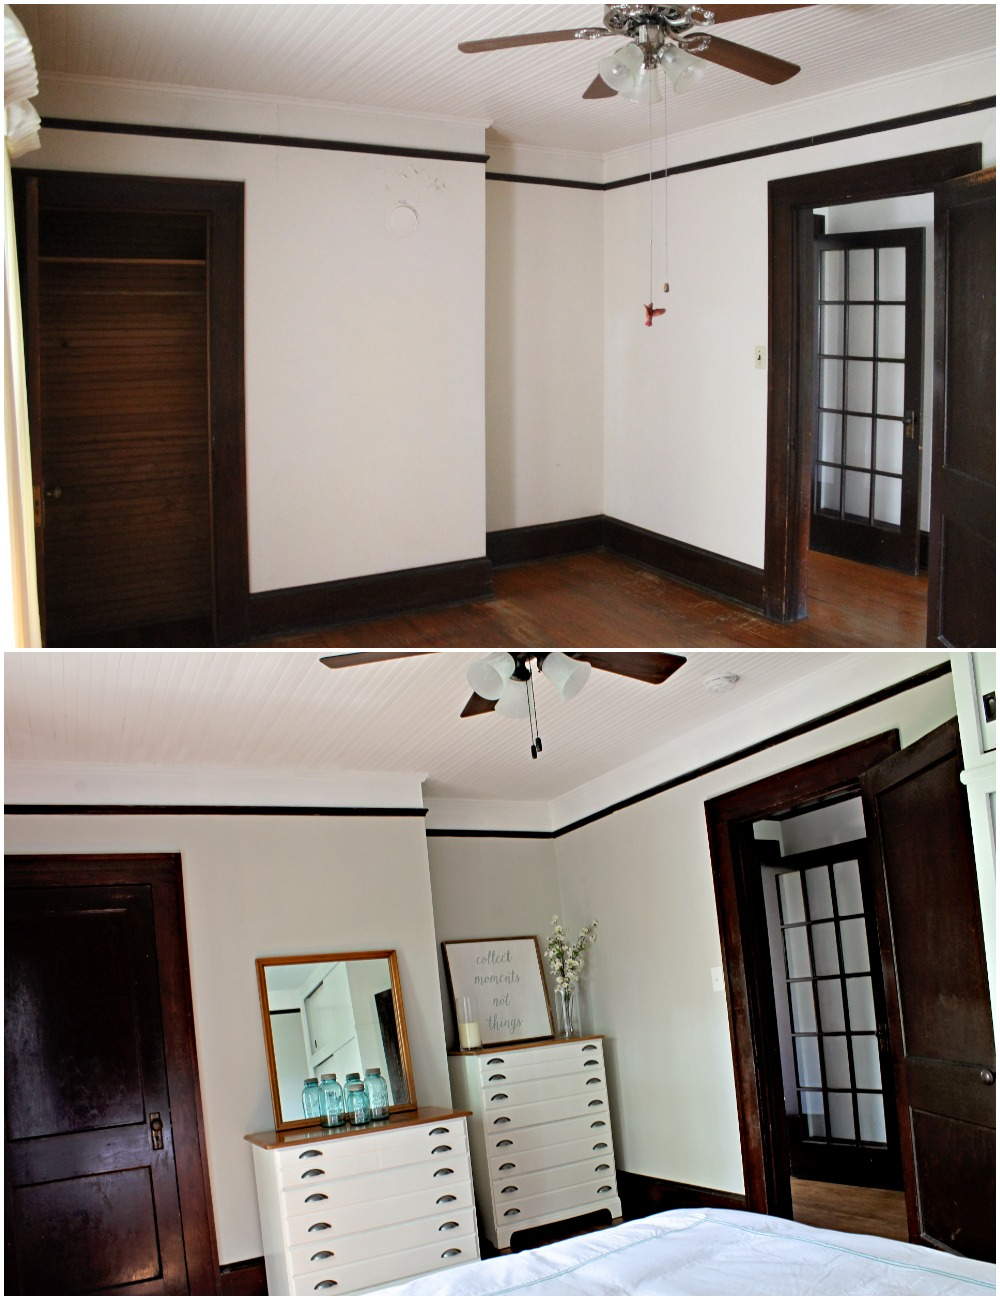 House Flipping Before and Afters - DIY BUDGET BEDROOM IDEAS (3).jpg